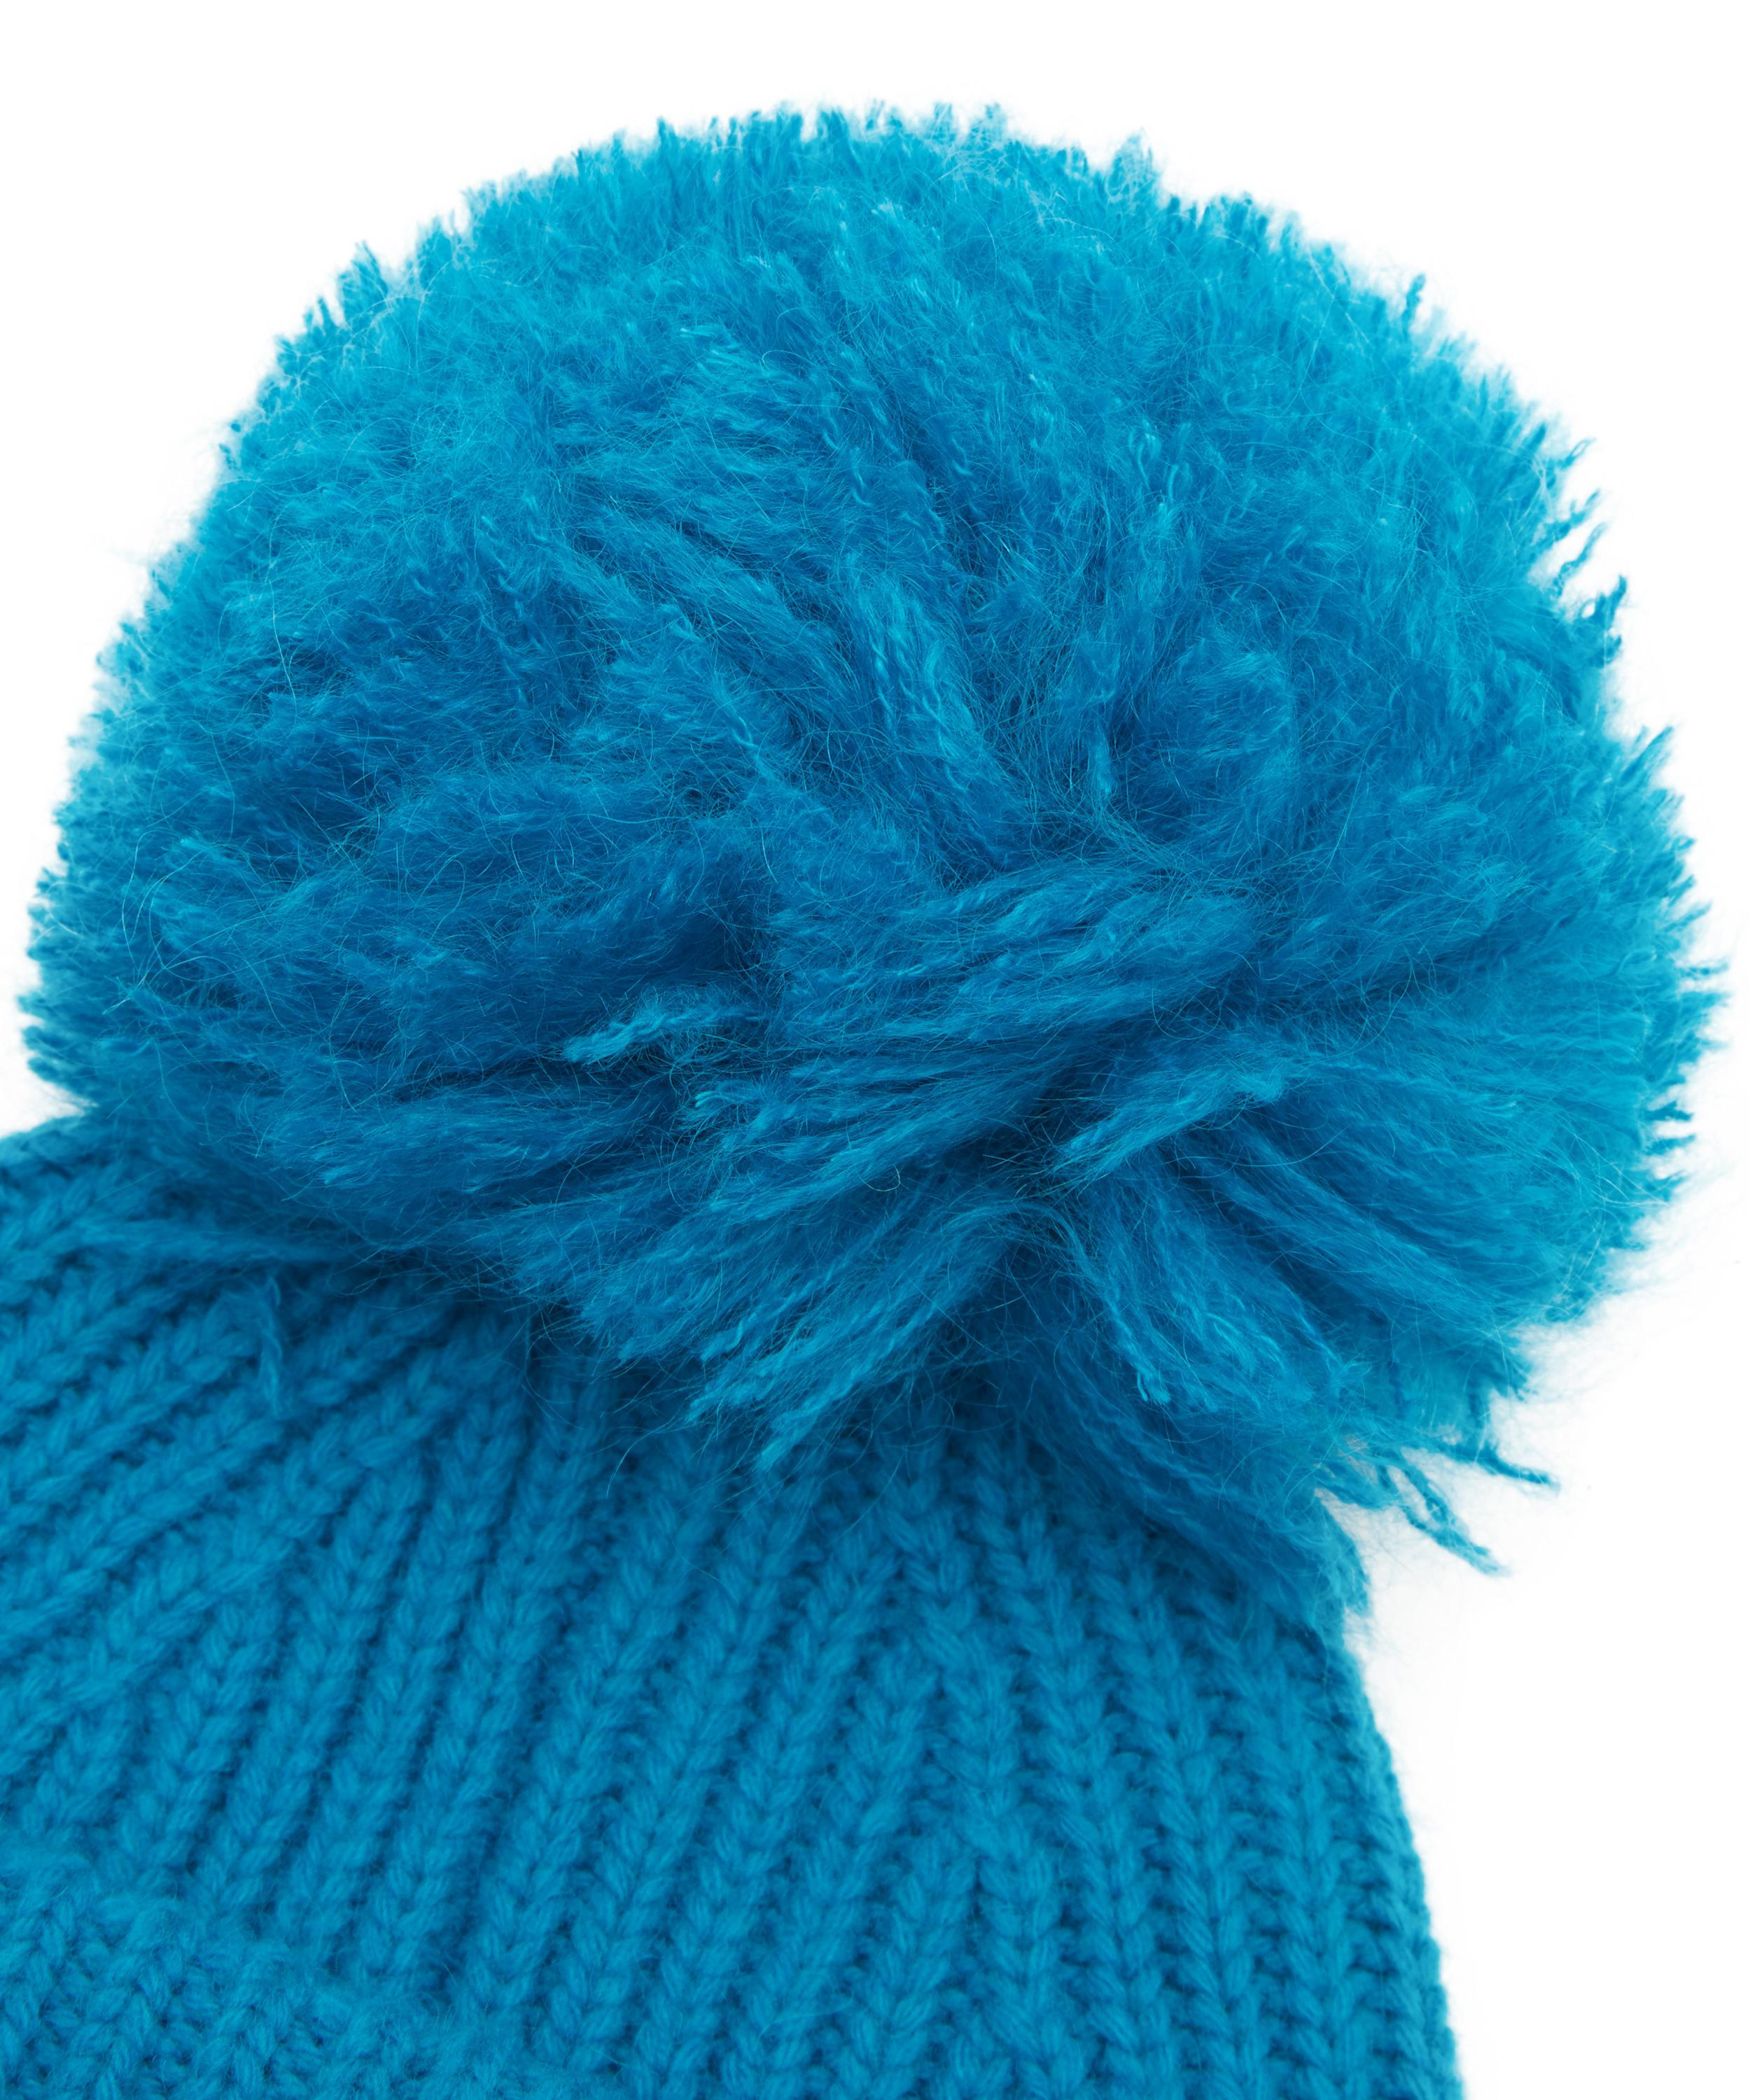 449df5fb15a Lyst - Acne Studios Solia Knitted Pom Pom Hat in Blue